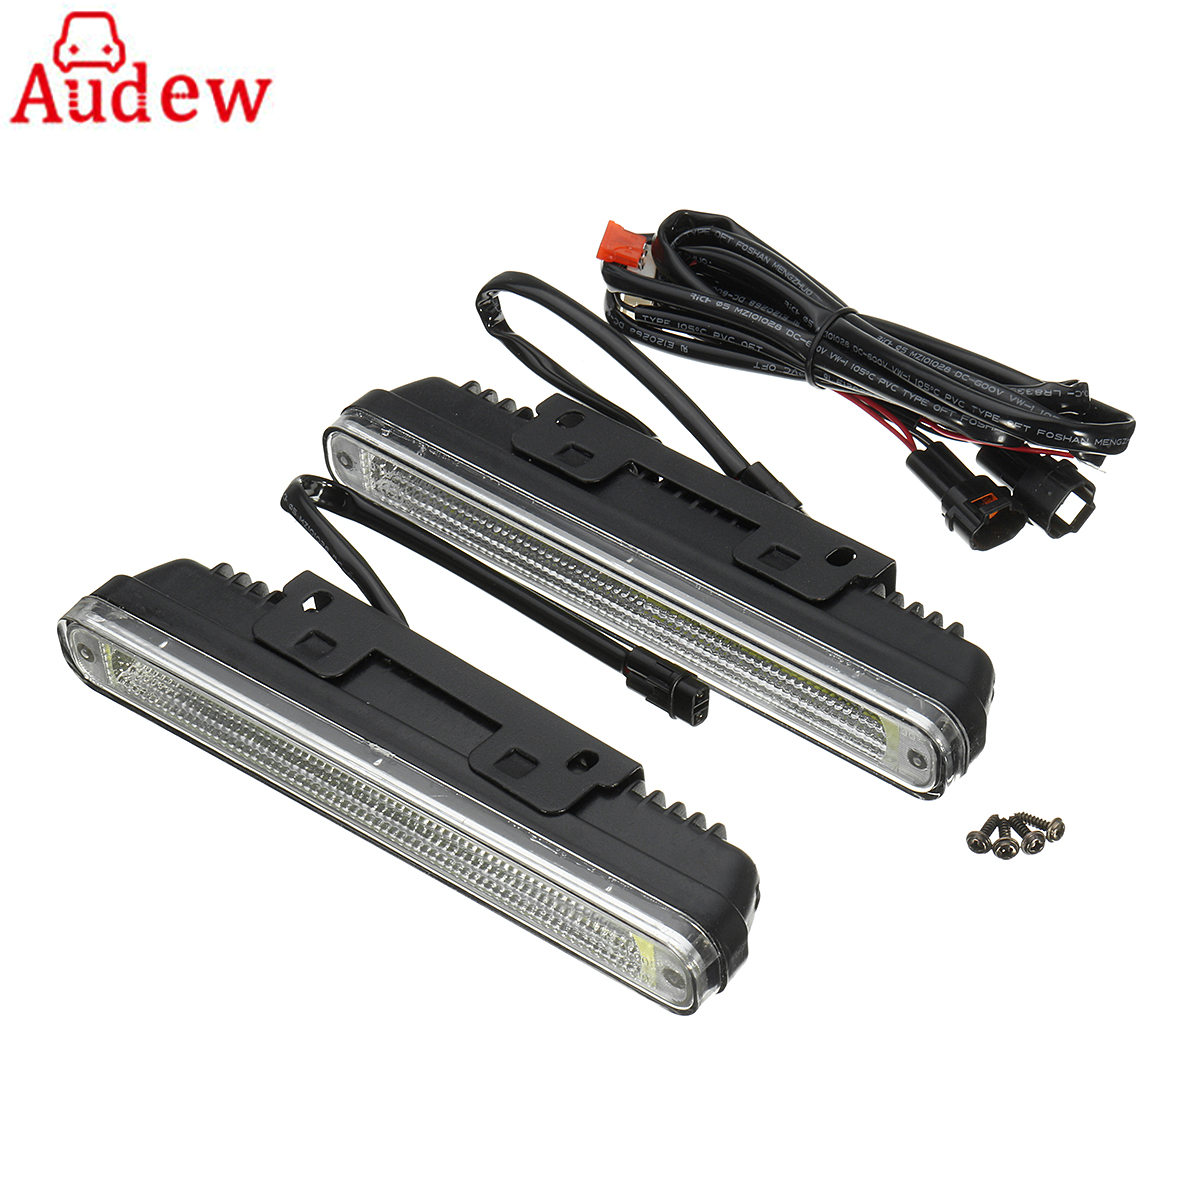 2Pcs Universal Car Daytime Running Light LED COB 12V DRL Auto Driving Front Fog Lamp White Bulb Waterproof 6000K wljh 2x car led 7 5w 12v 24v cob chip 881 h27 led fog light daytime running lamp drl fog light bulb lamp for kia sorento hyundai